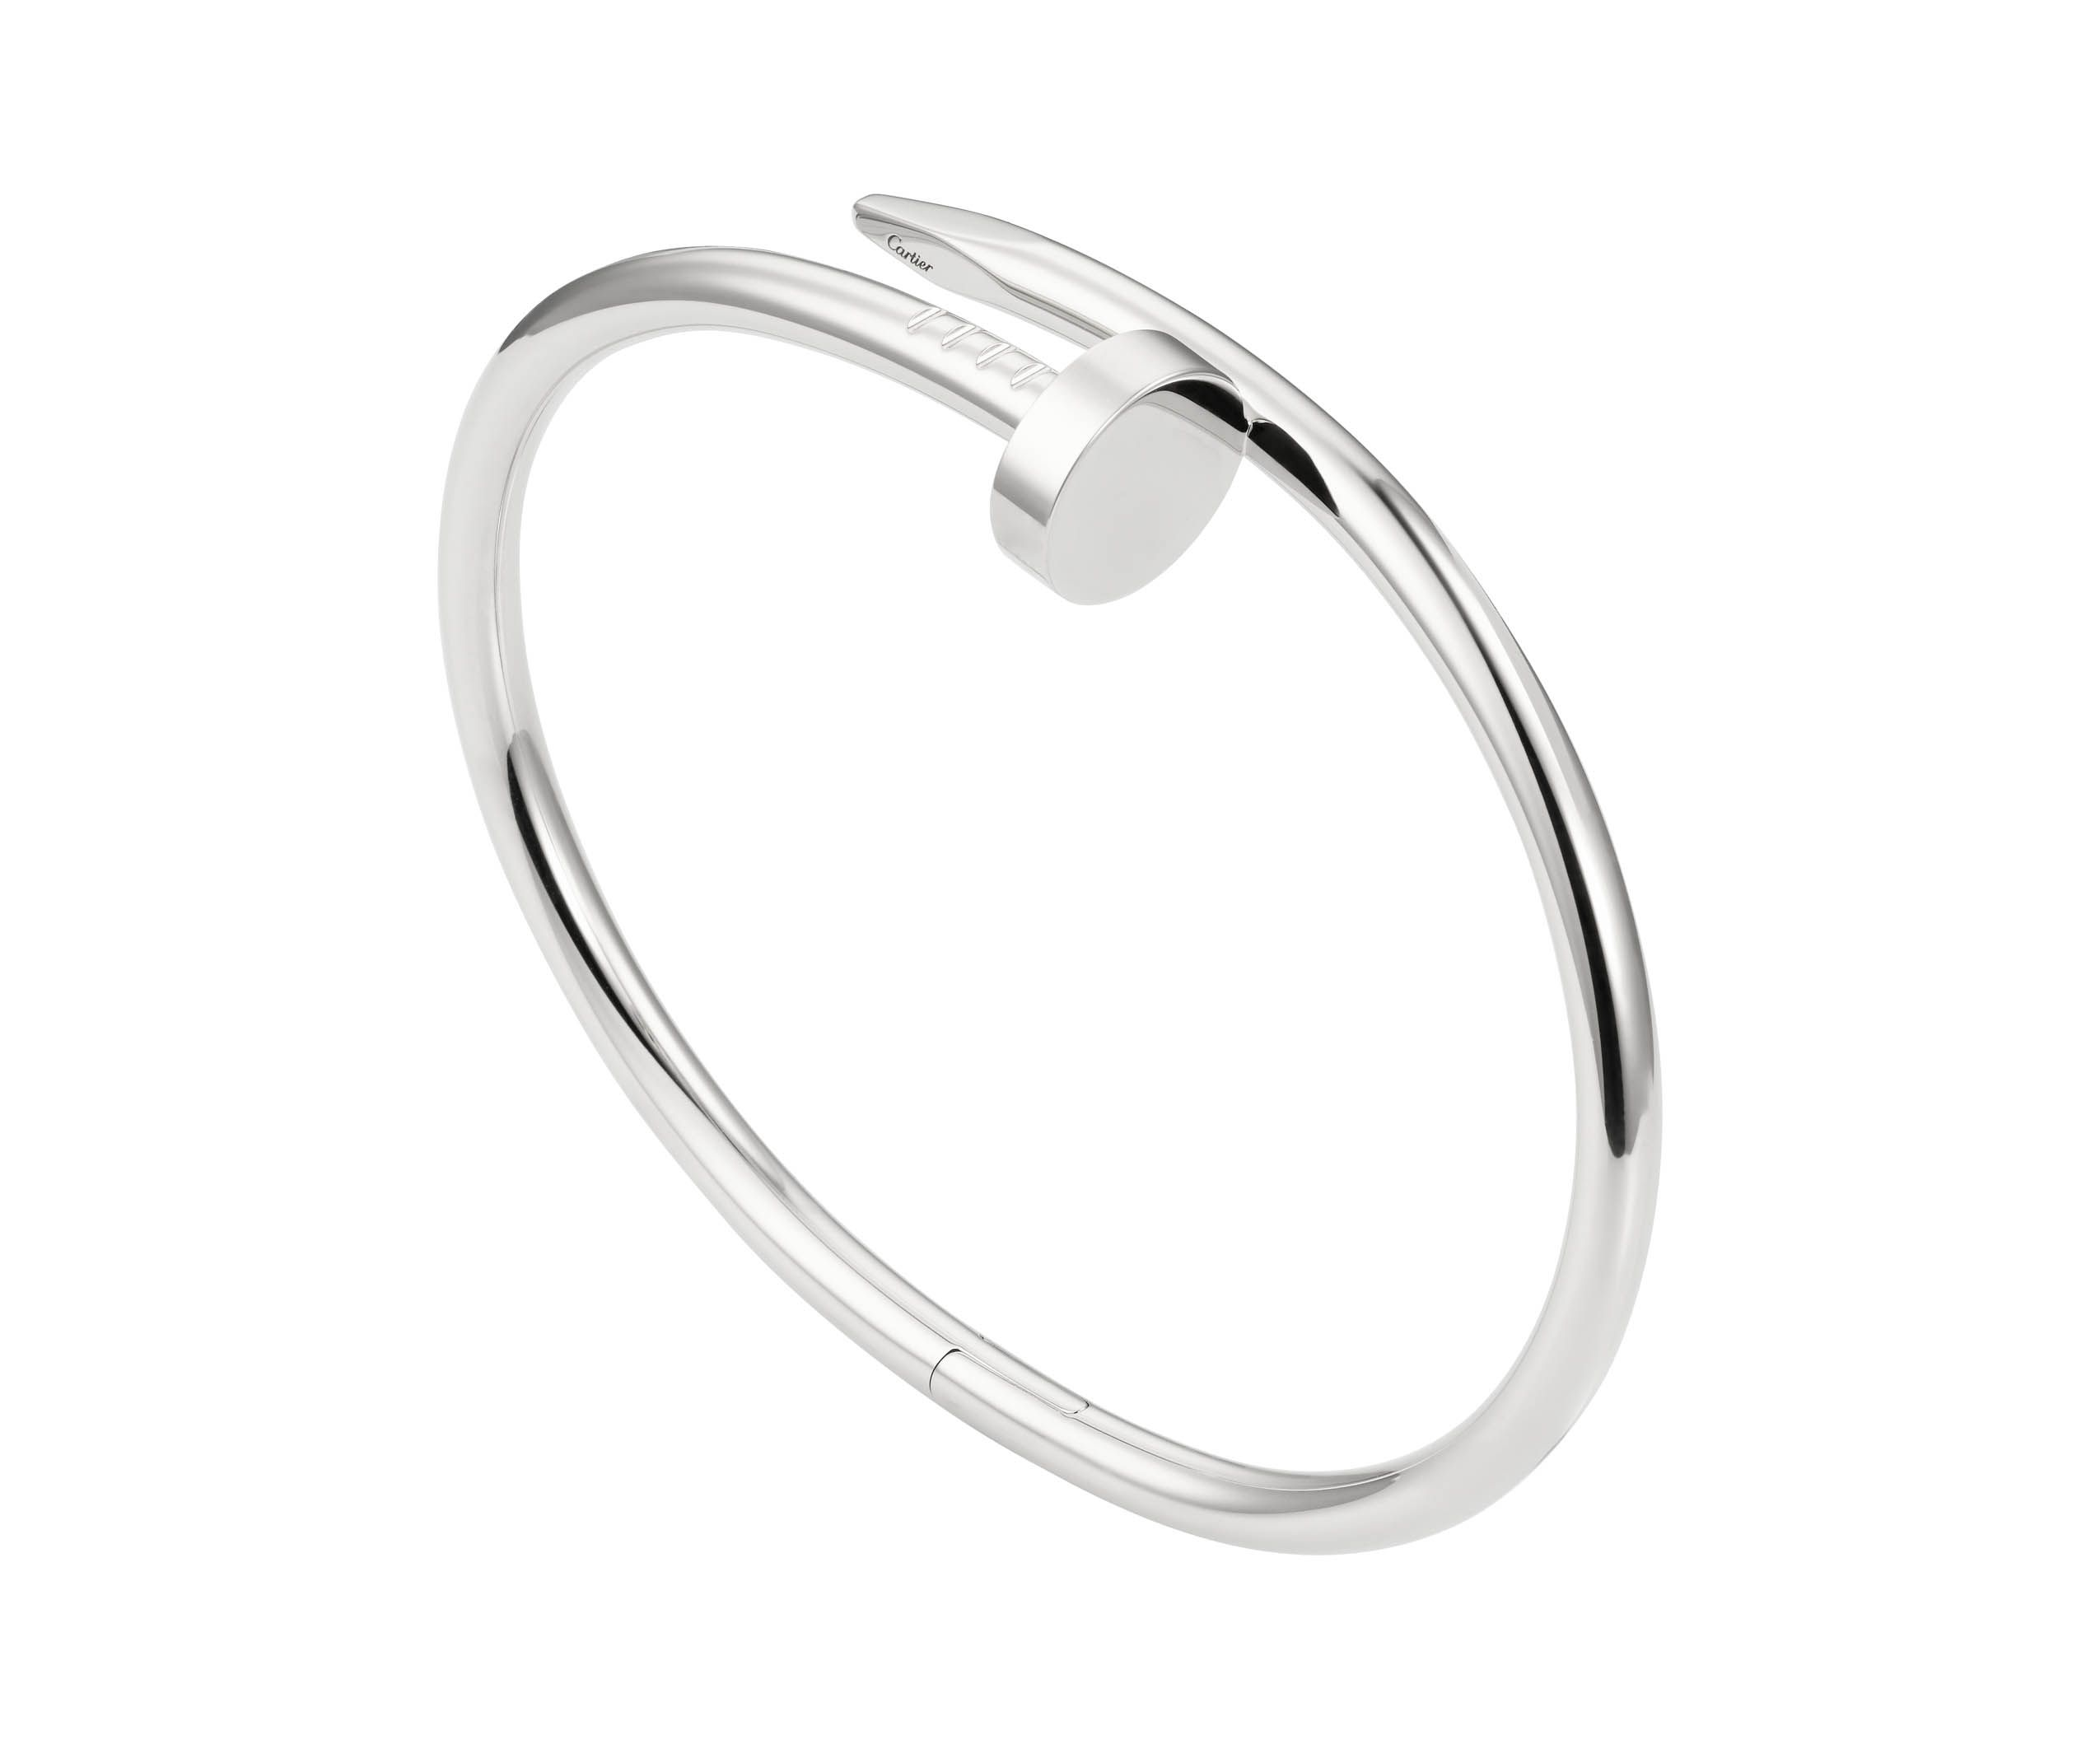 silver bangles pin pinterest jewelery and tone expensive gucci bangle